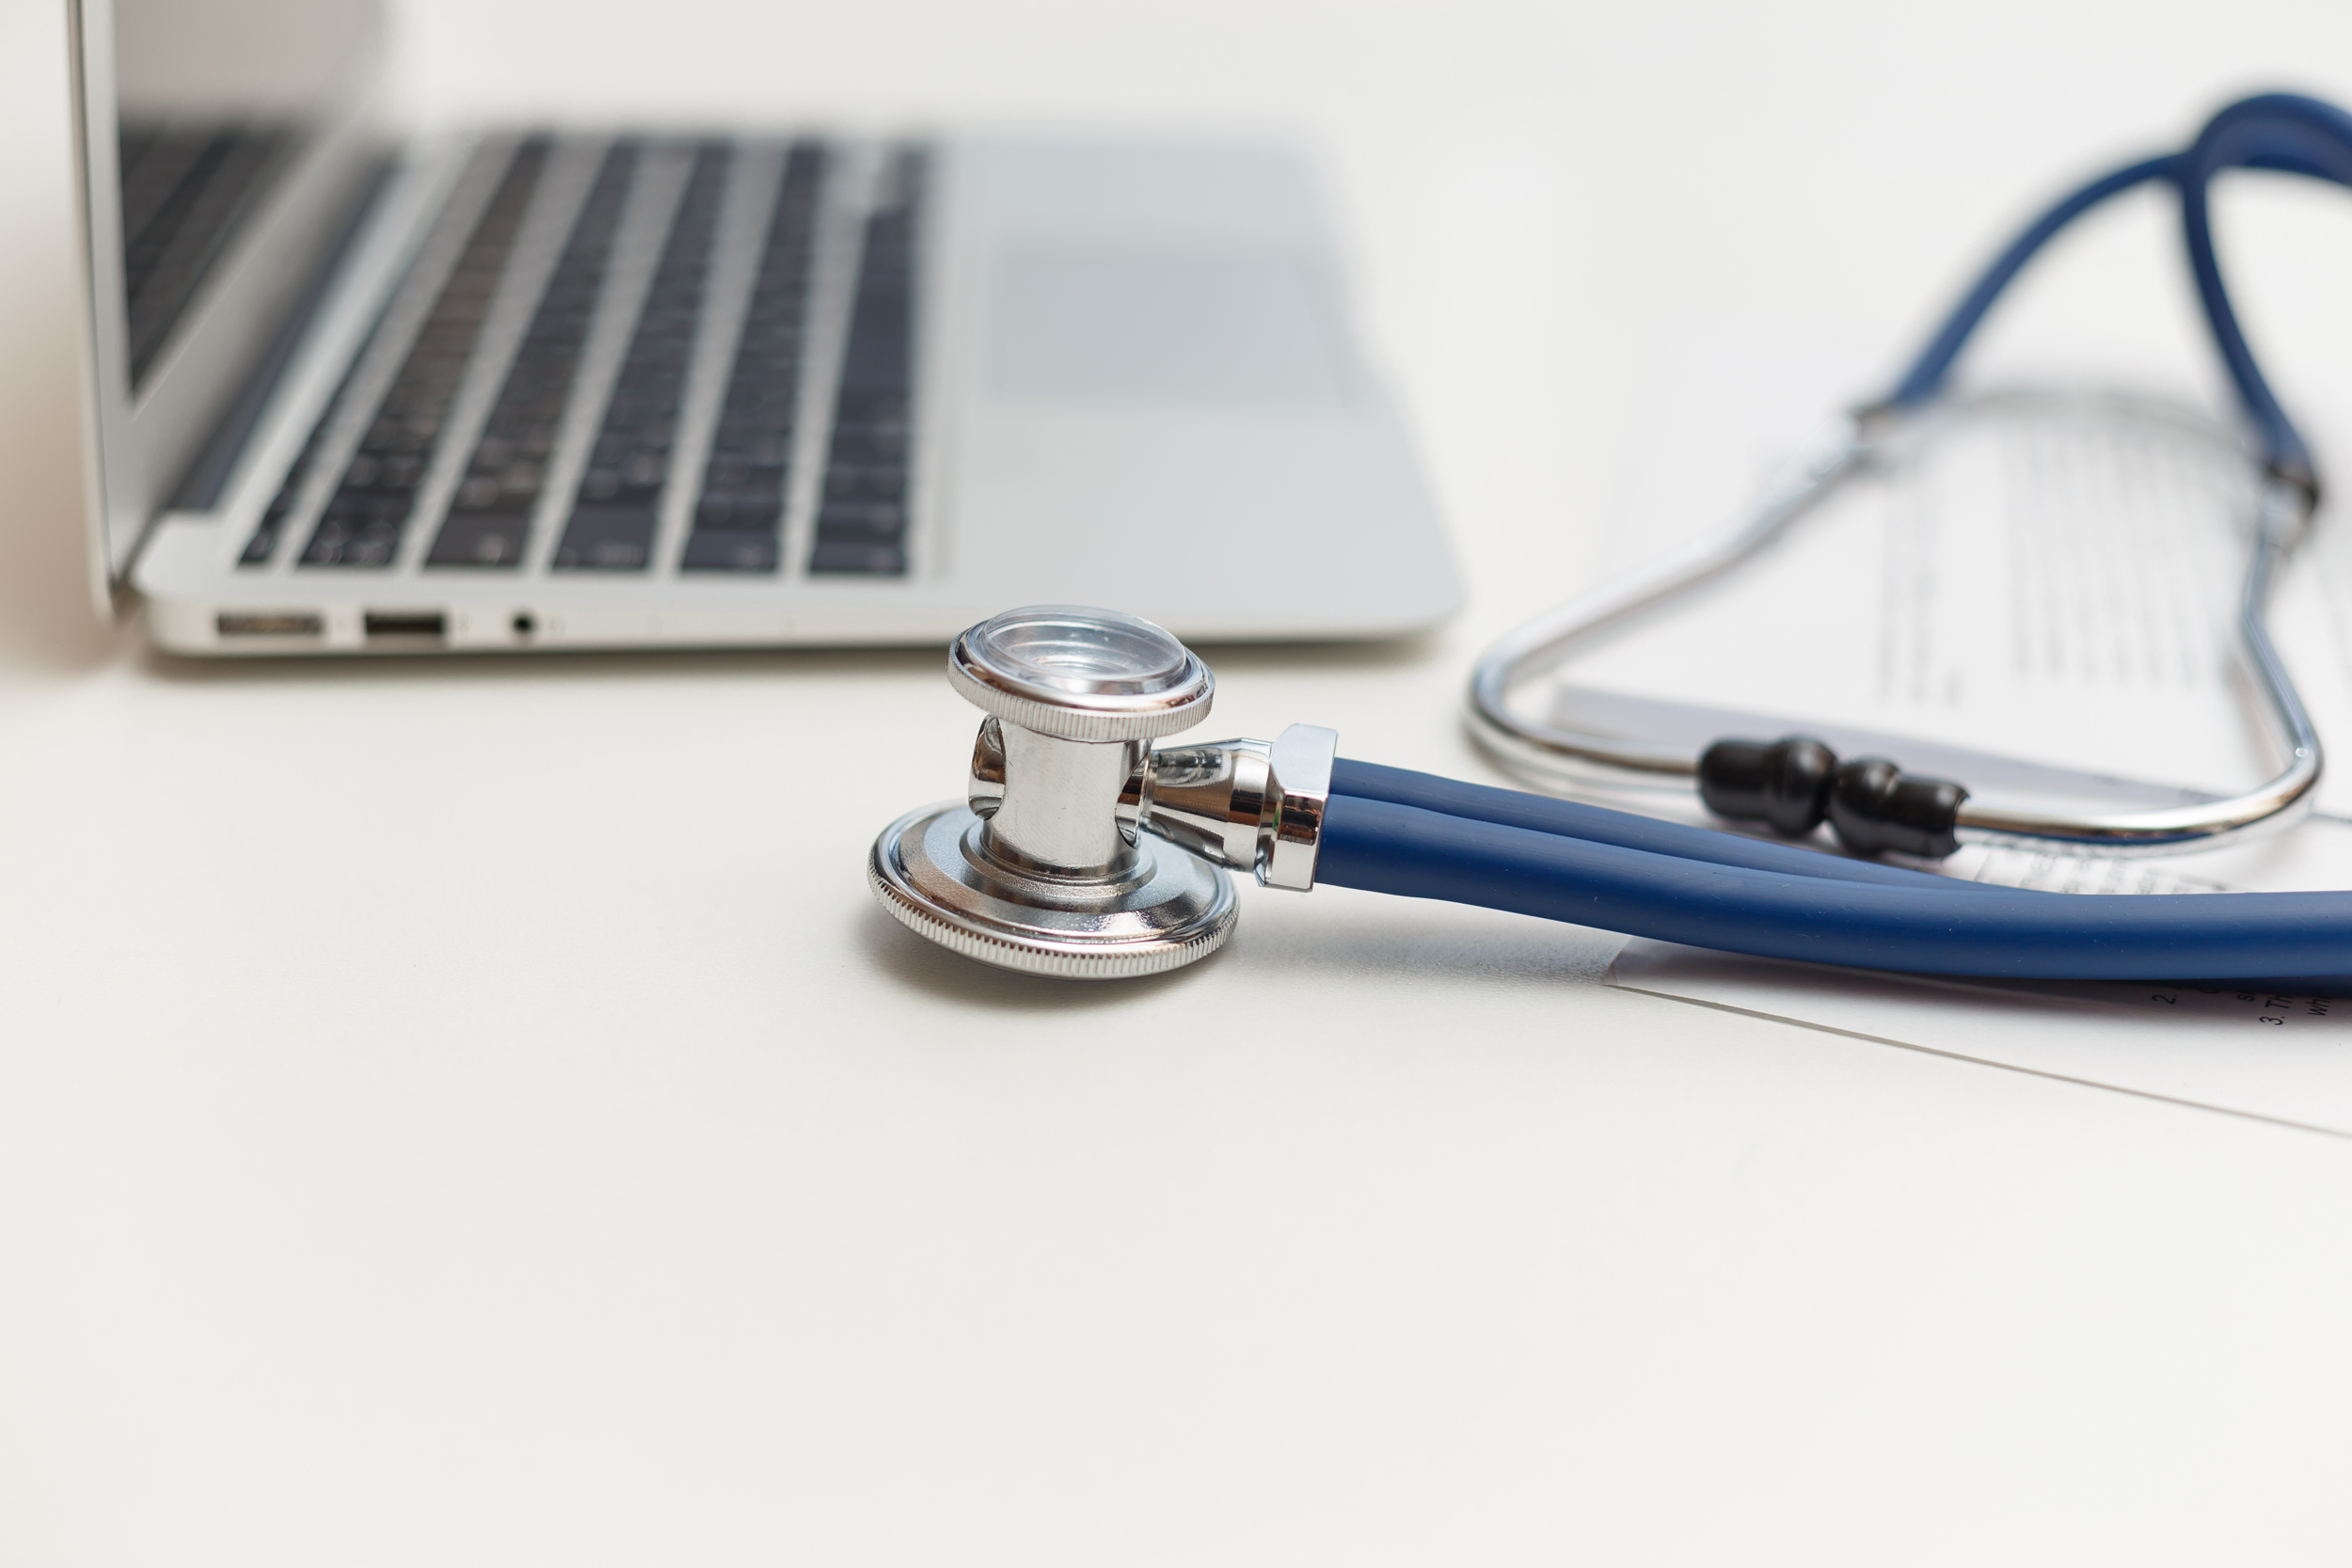 Doctor fee framework will affect rural healthcare, says AMA